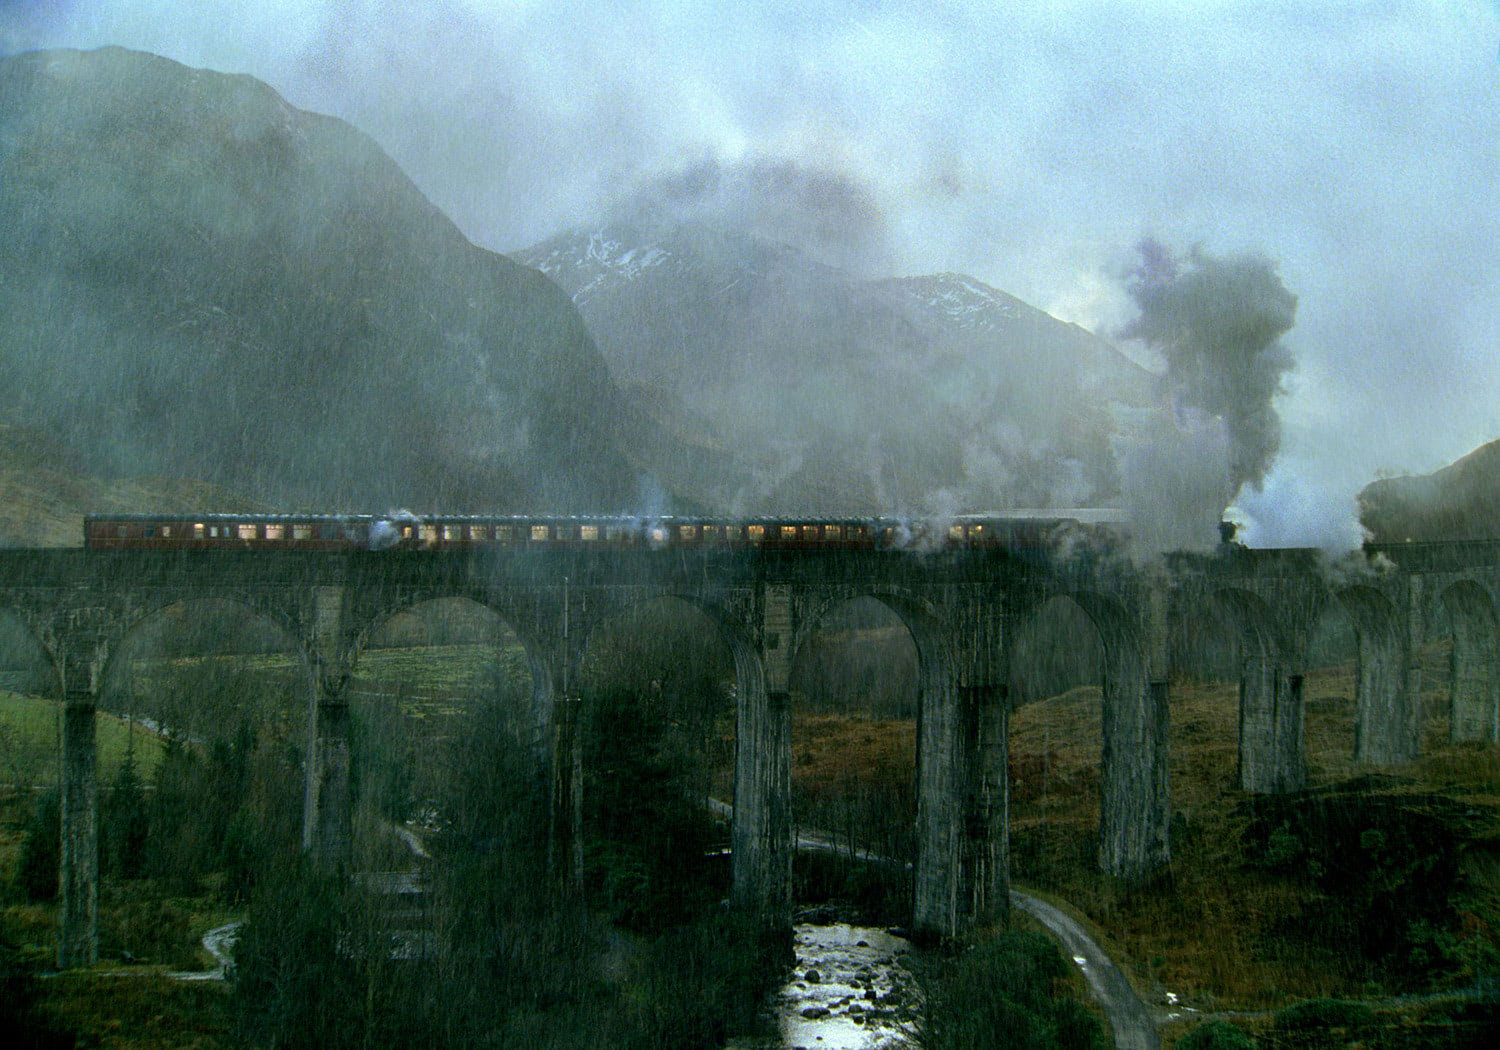 Hogwarts Express stopped on a bridge